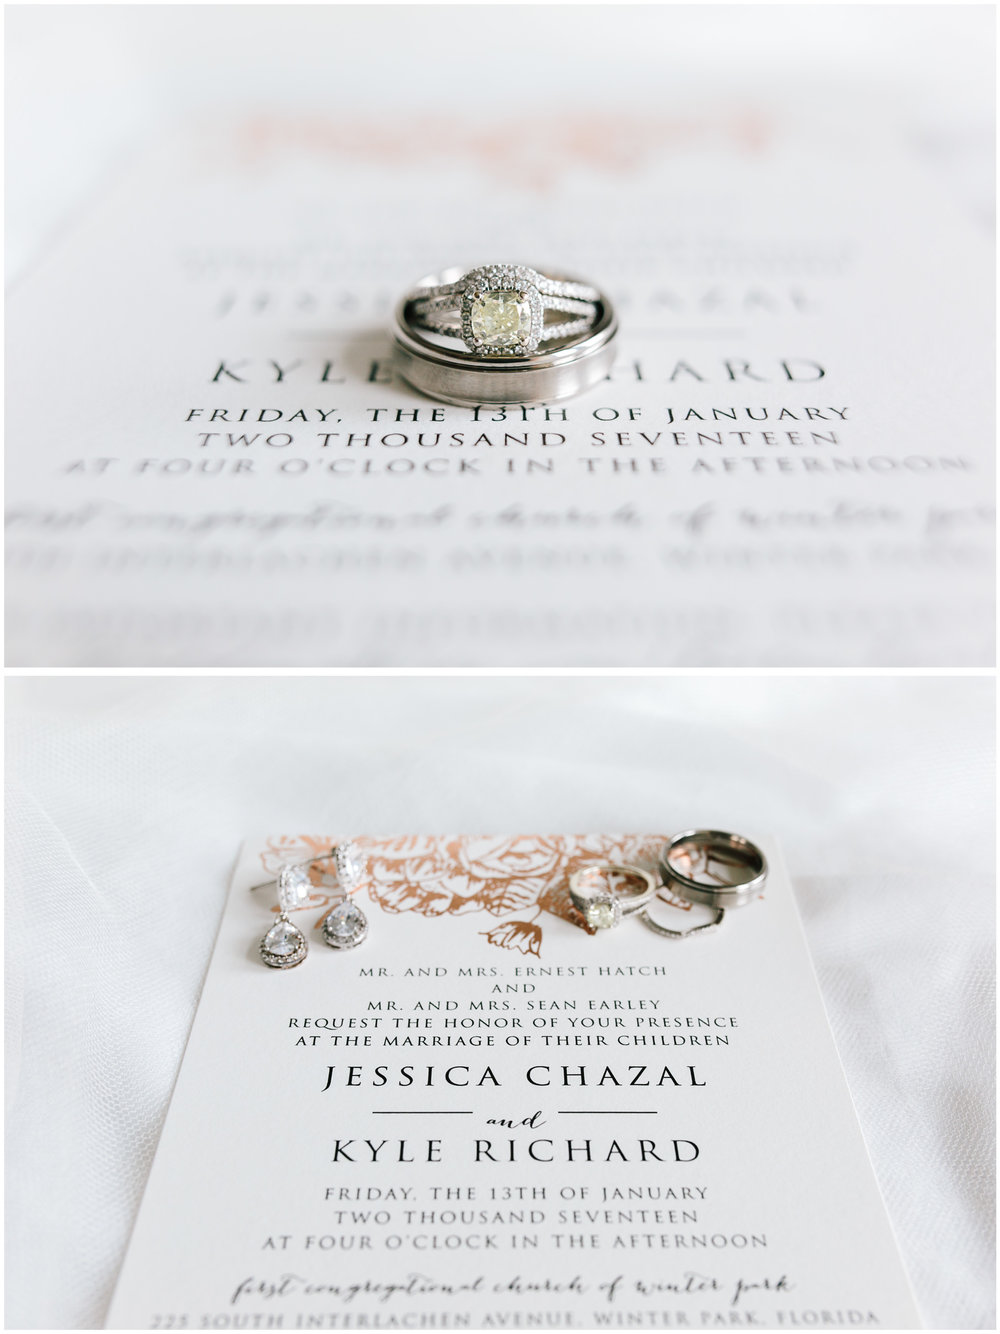 Weddings details of wedding bands